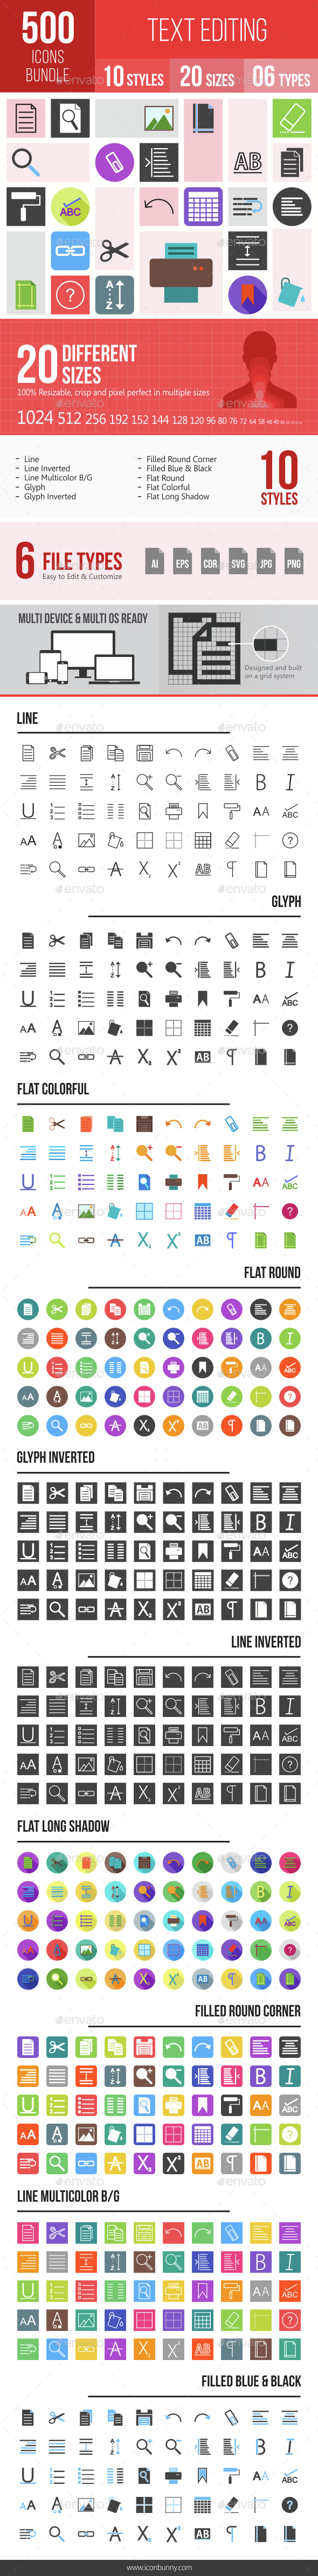 500 Text Editing Icons Bundle - Icons